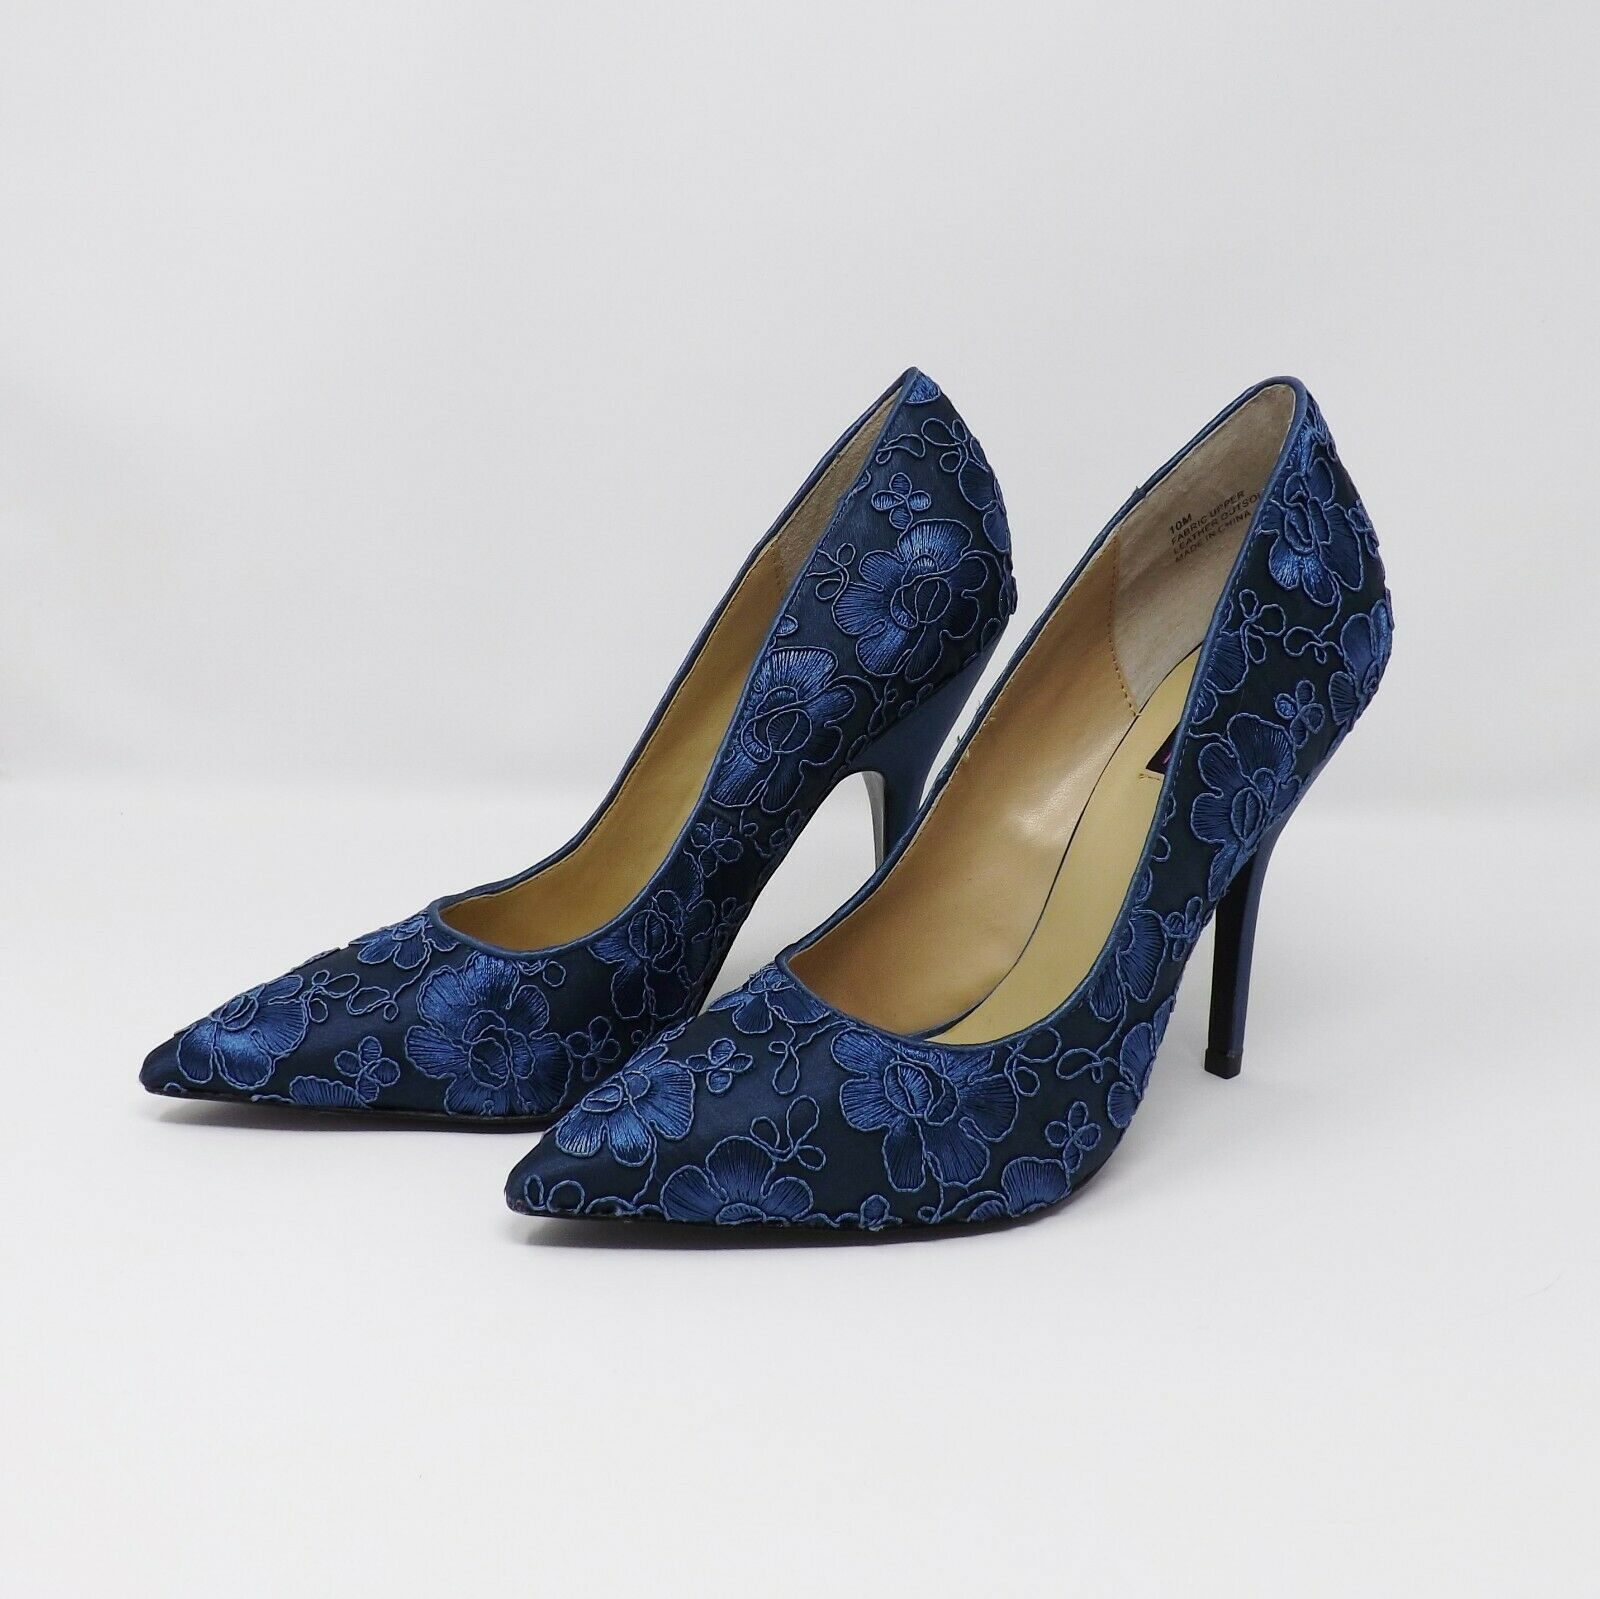 MoJo Moxy Blue Embroidered Flower Pump Heels - Size 10M